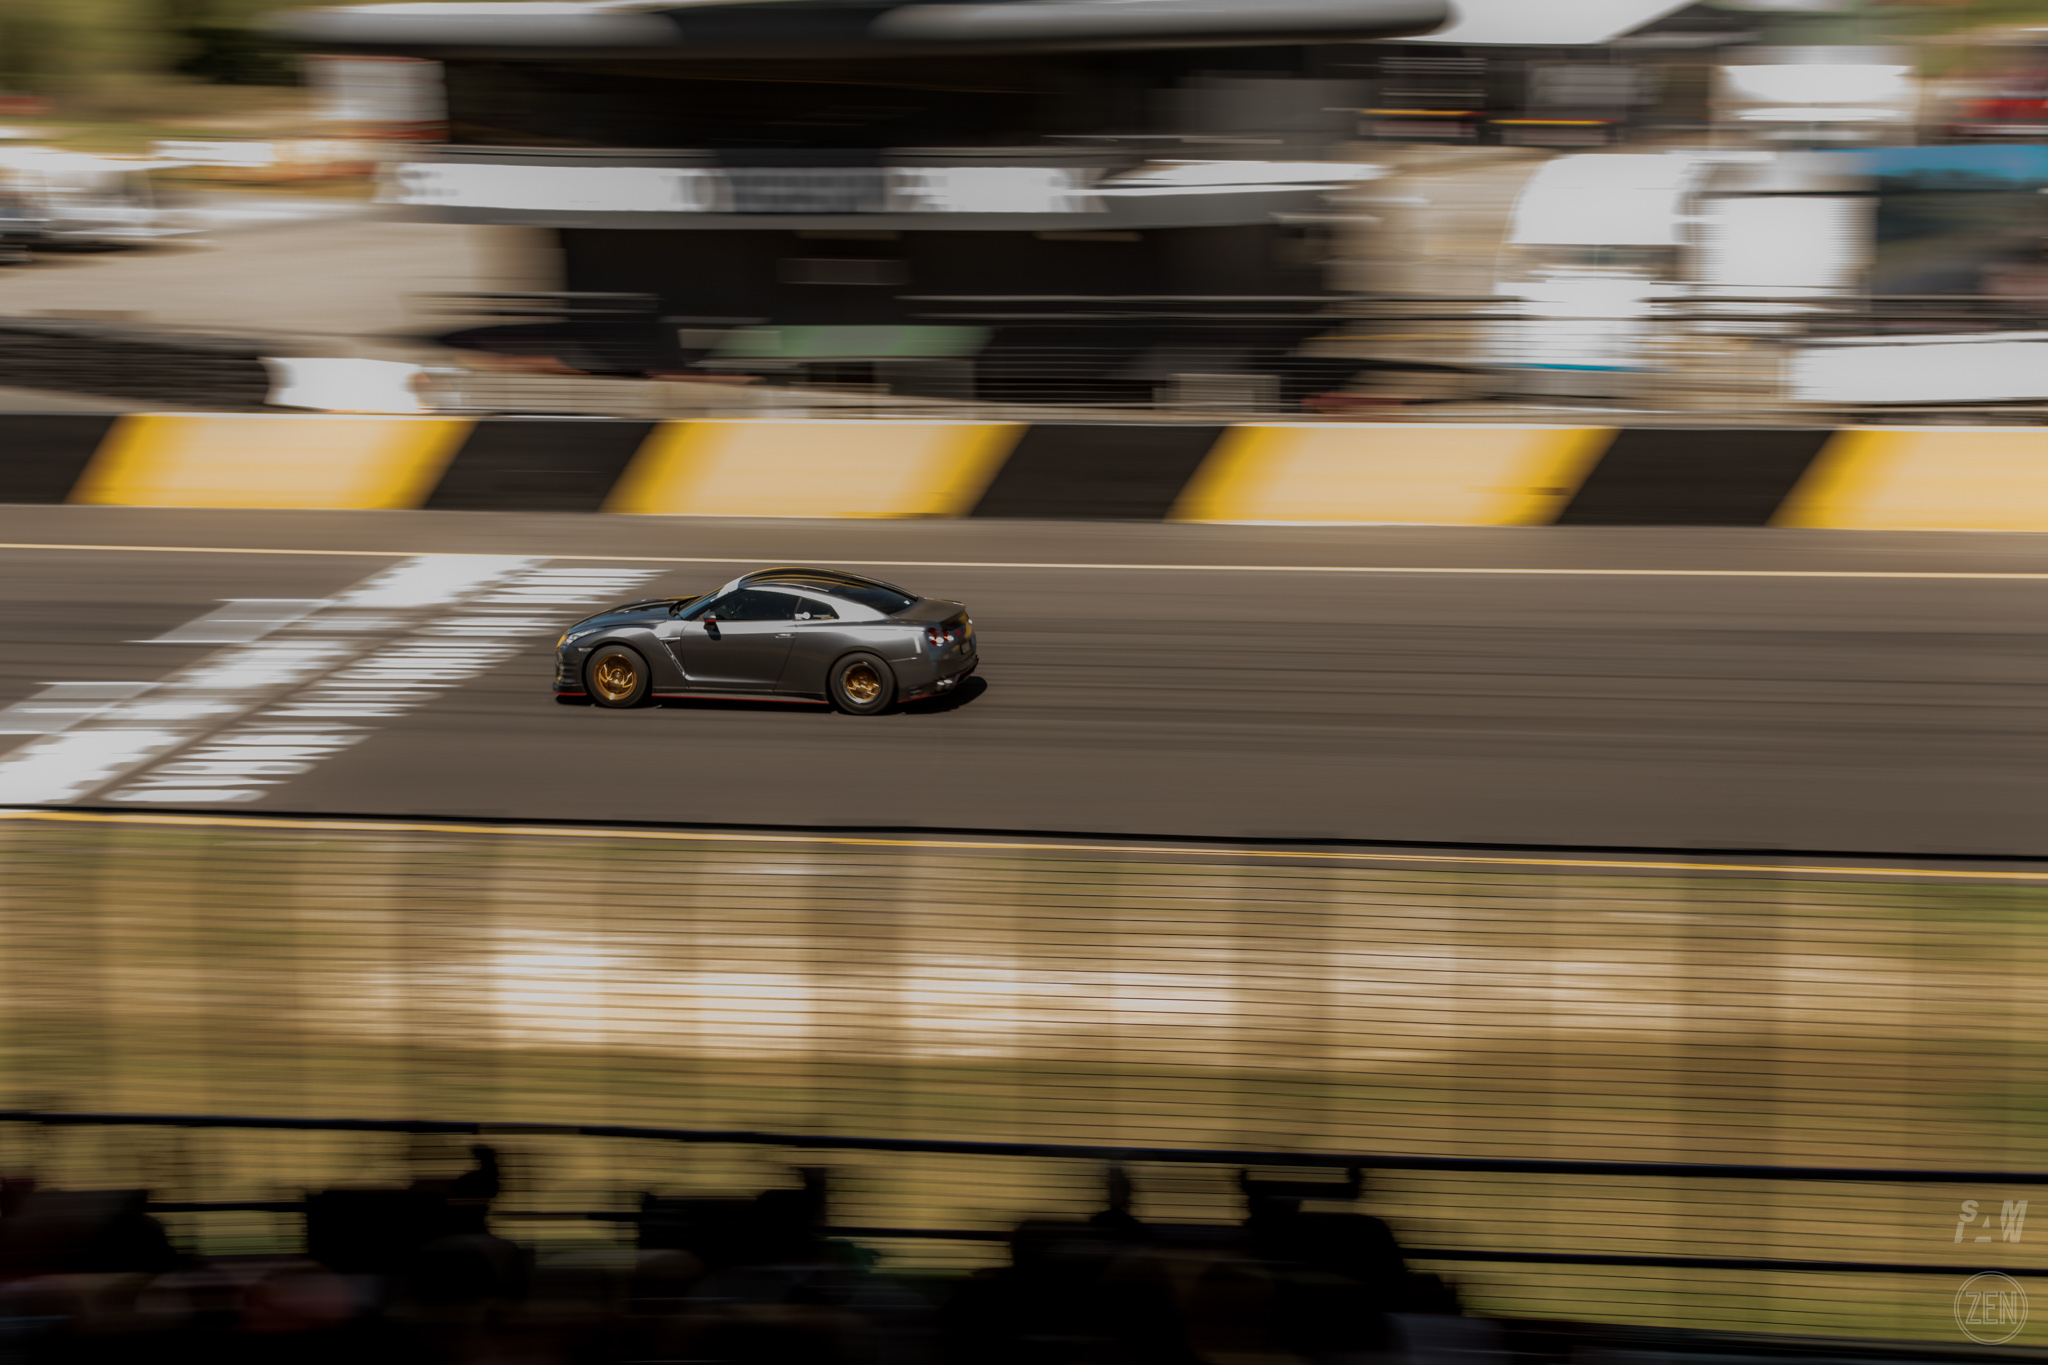 2019-10-18 - WTAC Day 01 013